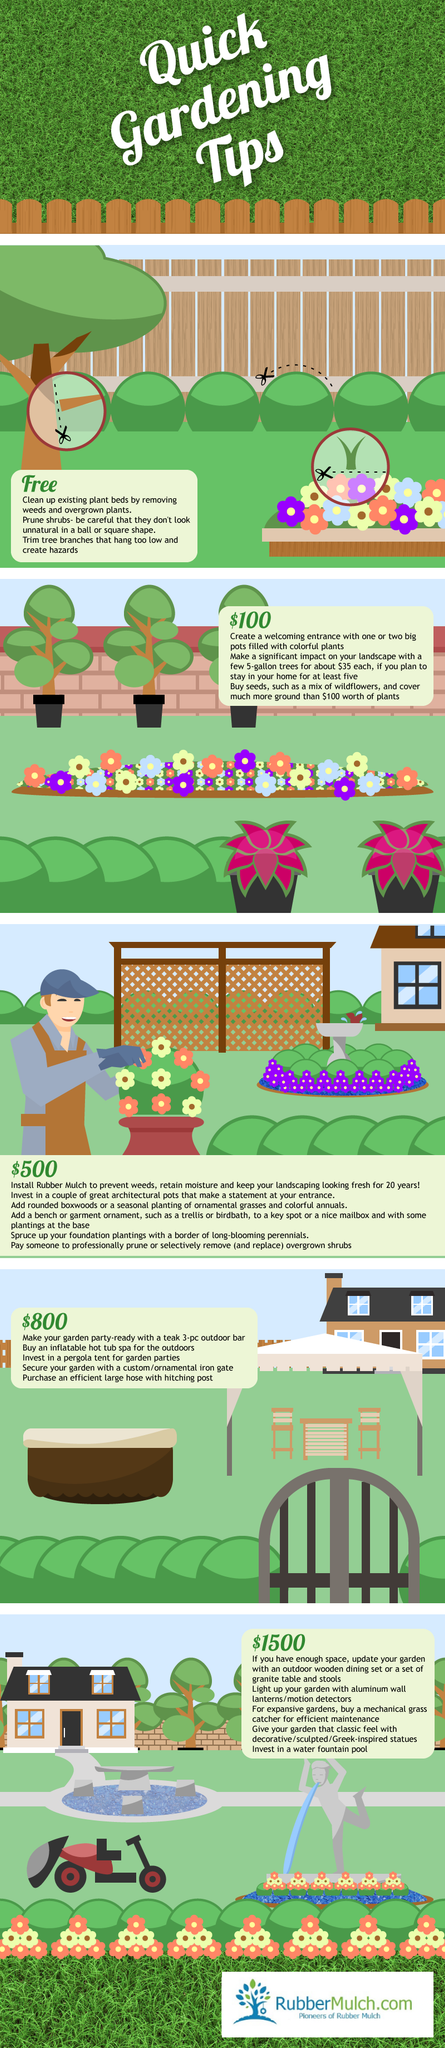 quick gardening tips infographic